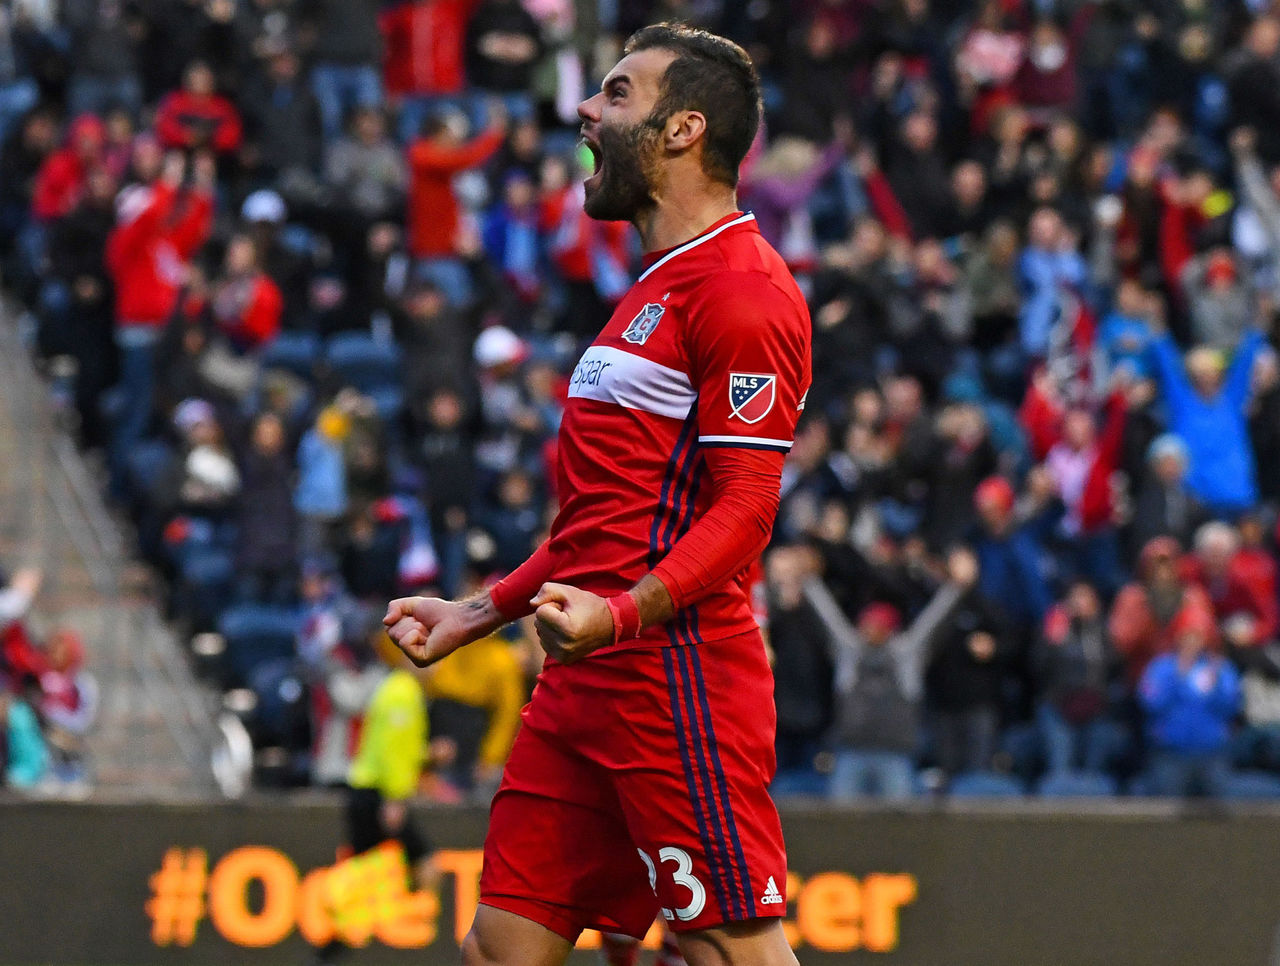 Cropped 2017 10 15t234003z 1658970169 nocid rtrmadp 3 mls philadelphia union at chicago fire